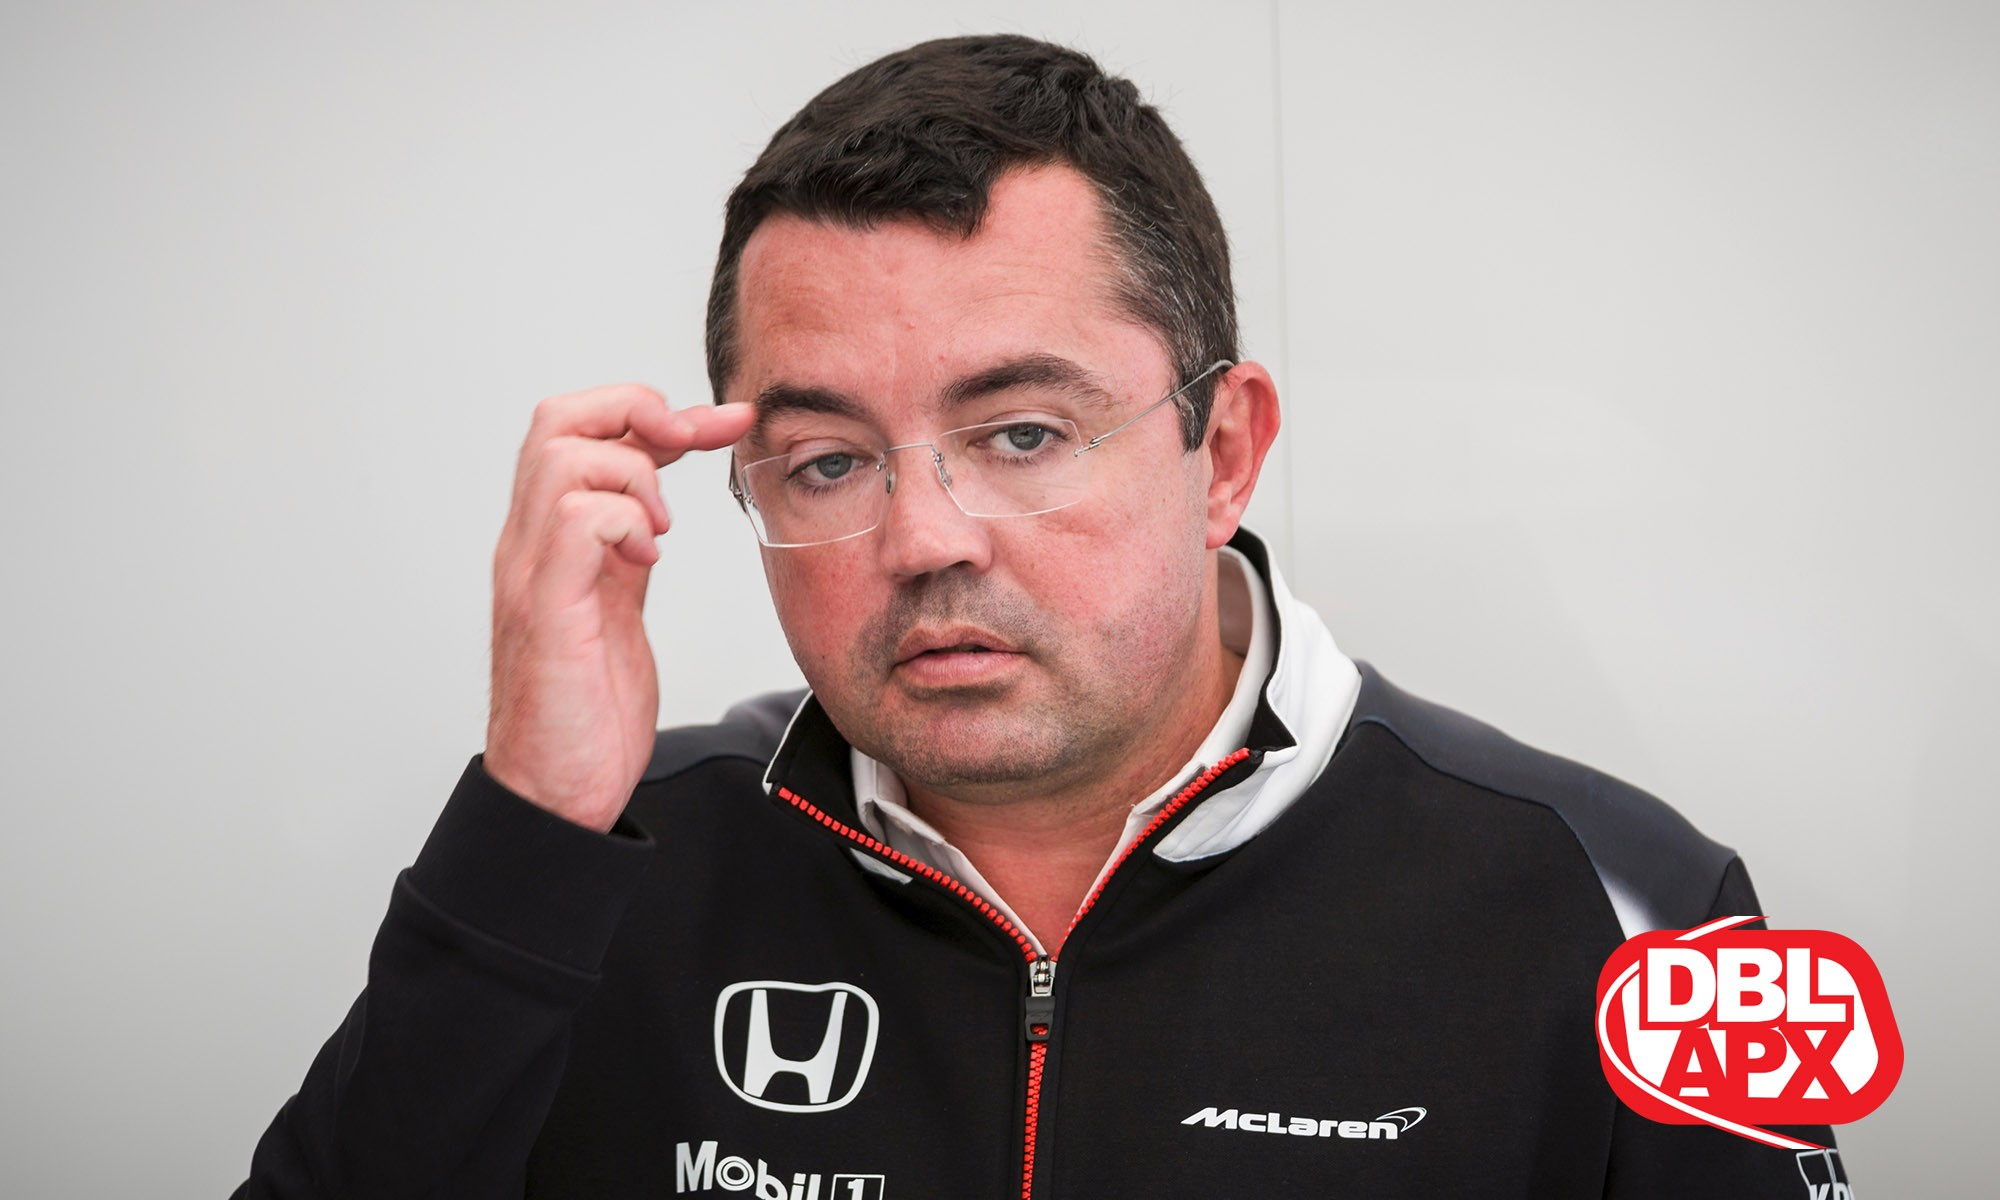 Eric Boullier departs from McLaren effective immediately